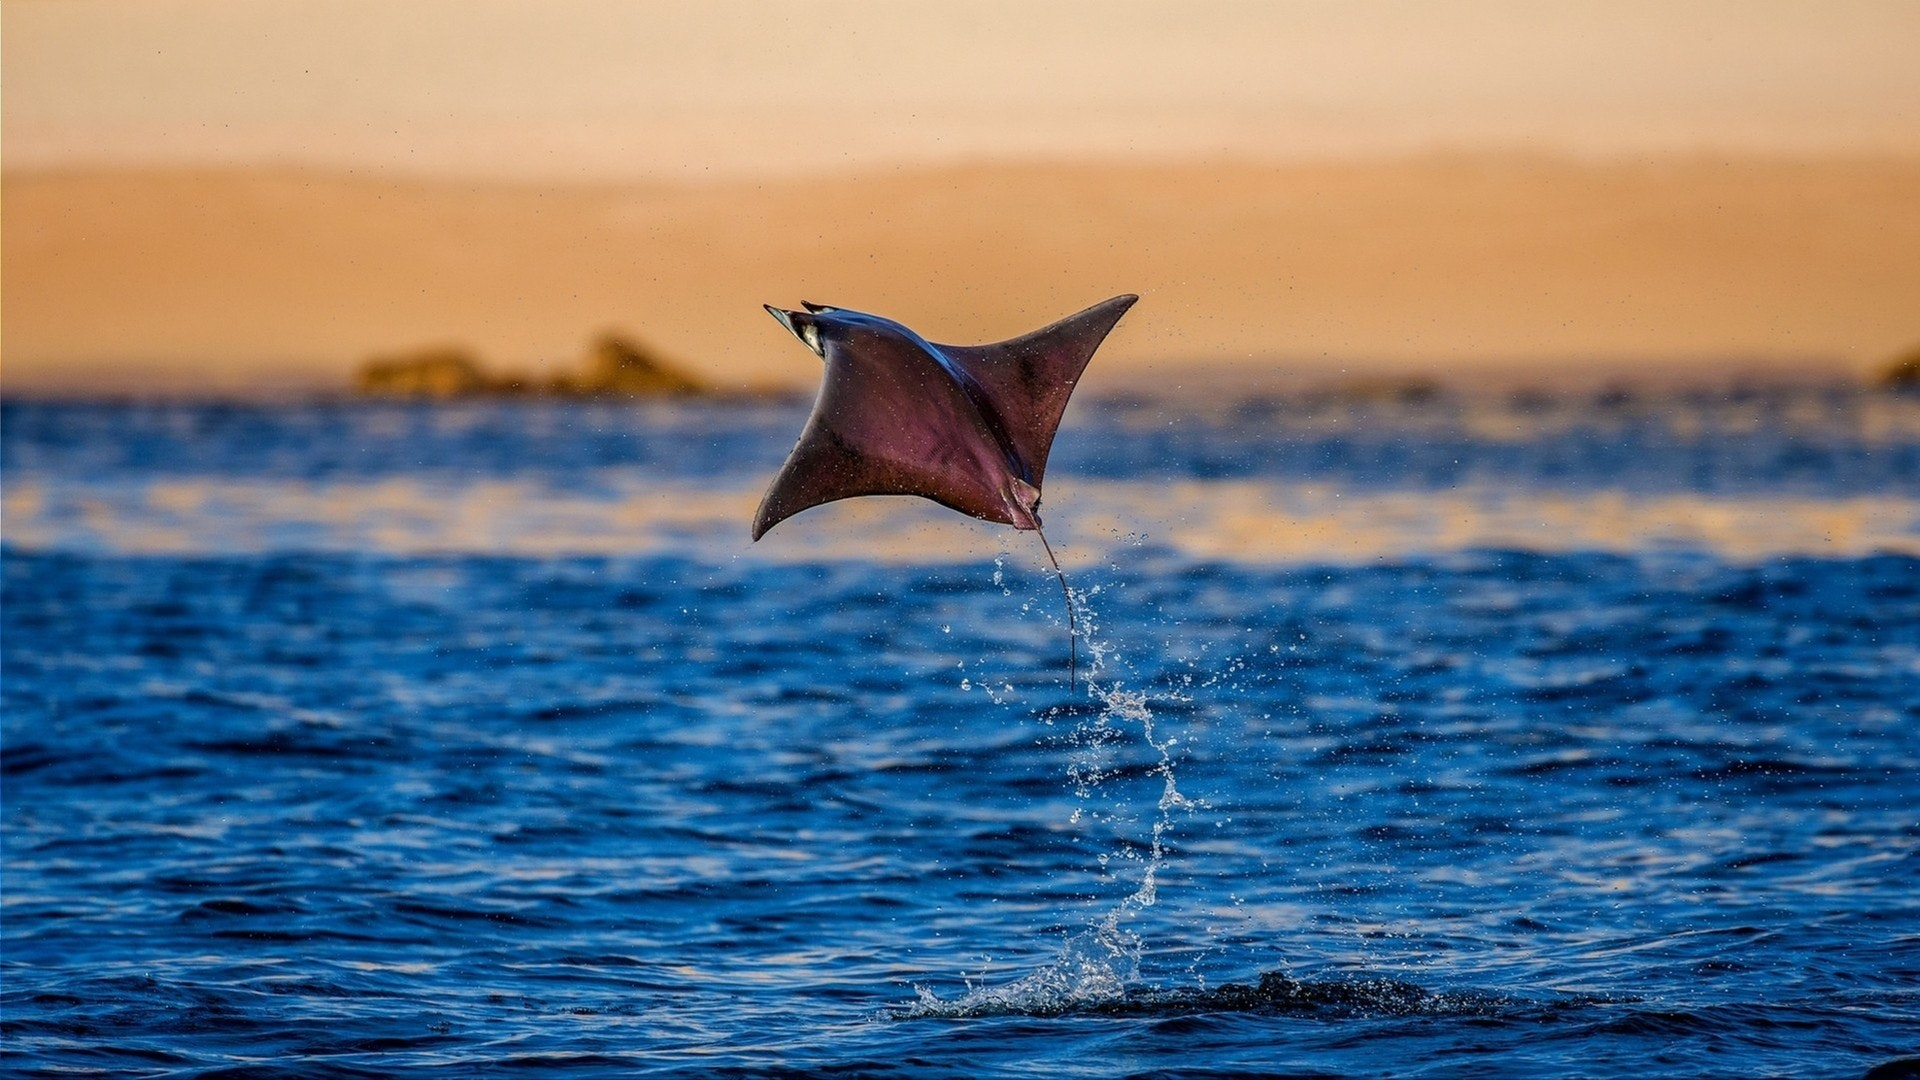 Mobula ray jumping of the beach of Cabo San Lucas, Mexico